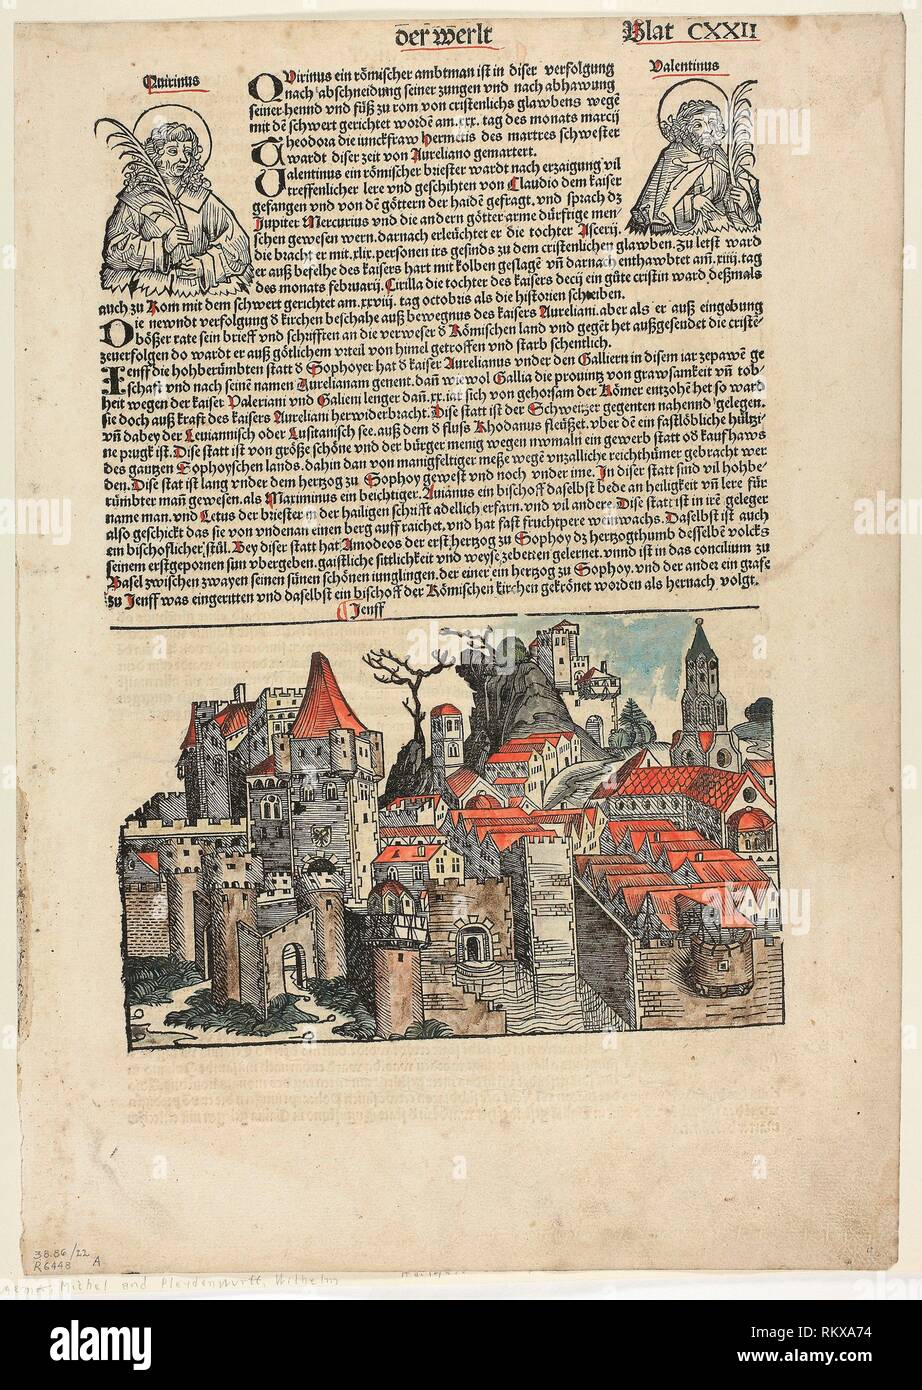 Geneva from Schedel Weltchronik (Schedel's World History), Plate 22 from Woodcuts from Books of the 15th Century - 1493, portfolio assembled 1929 - - Stock Image